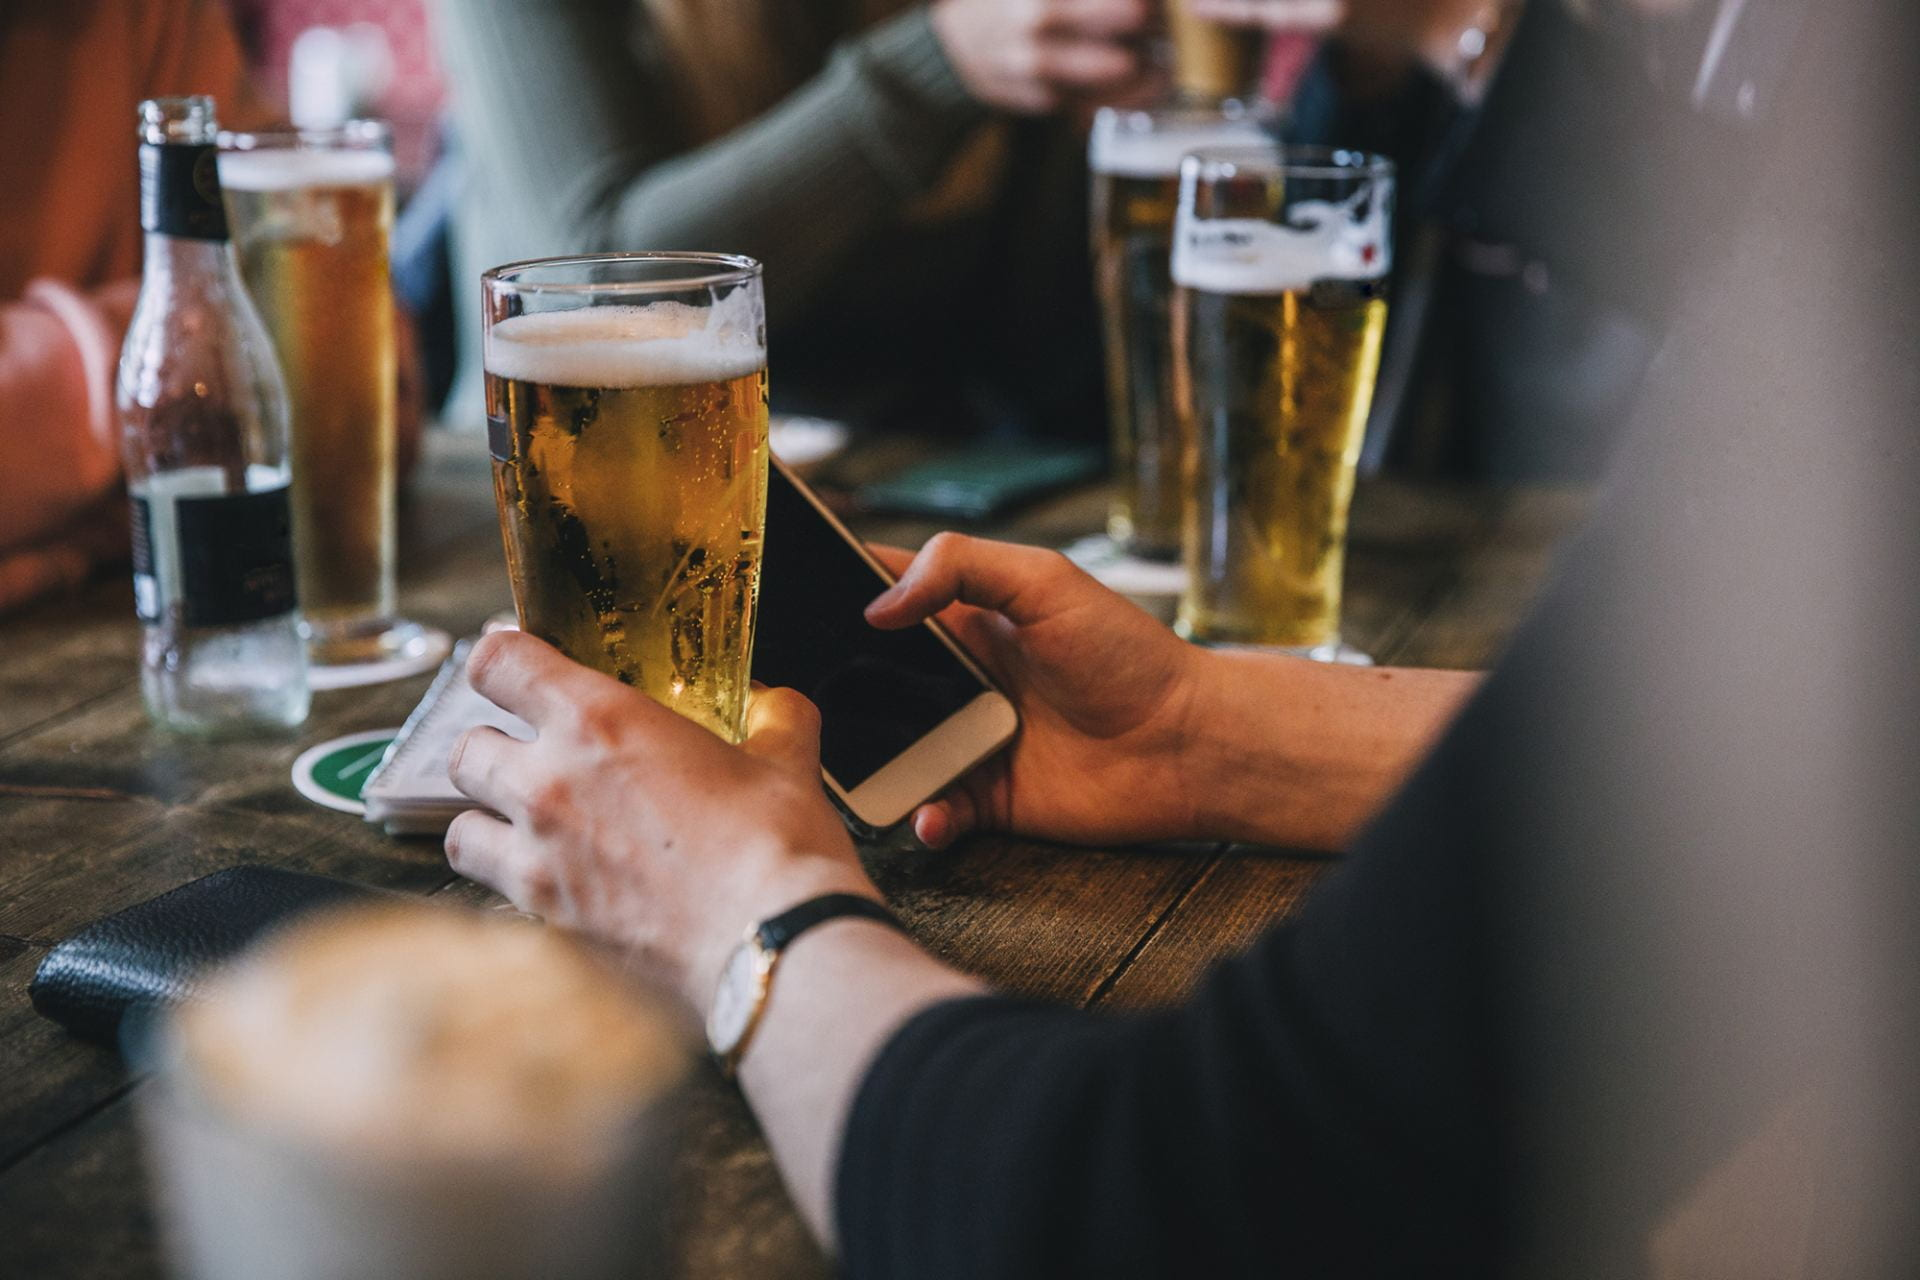 [A photo of a person drinking a beer while also on their mobile phone.]